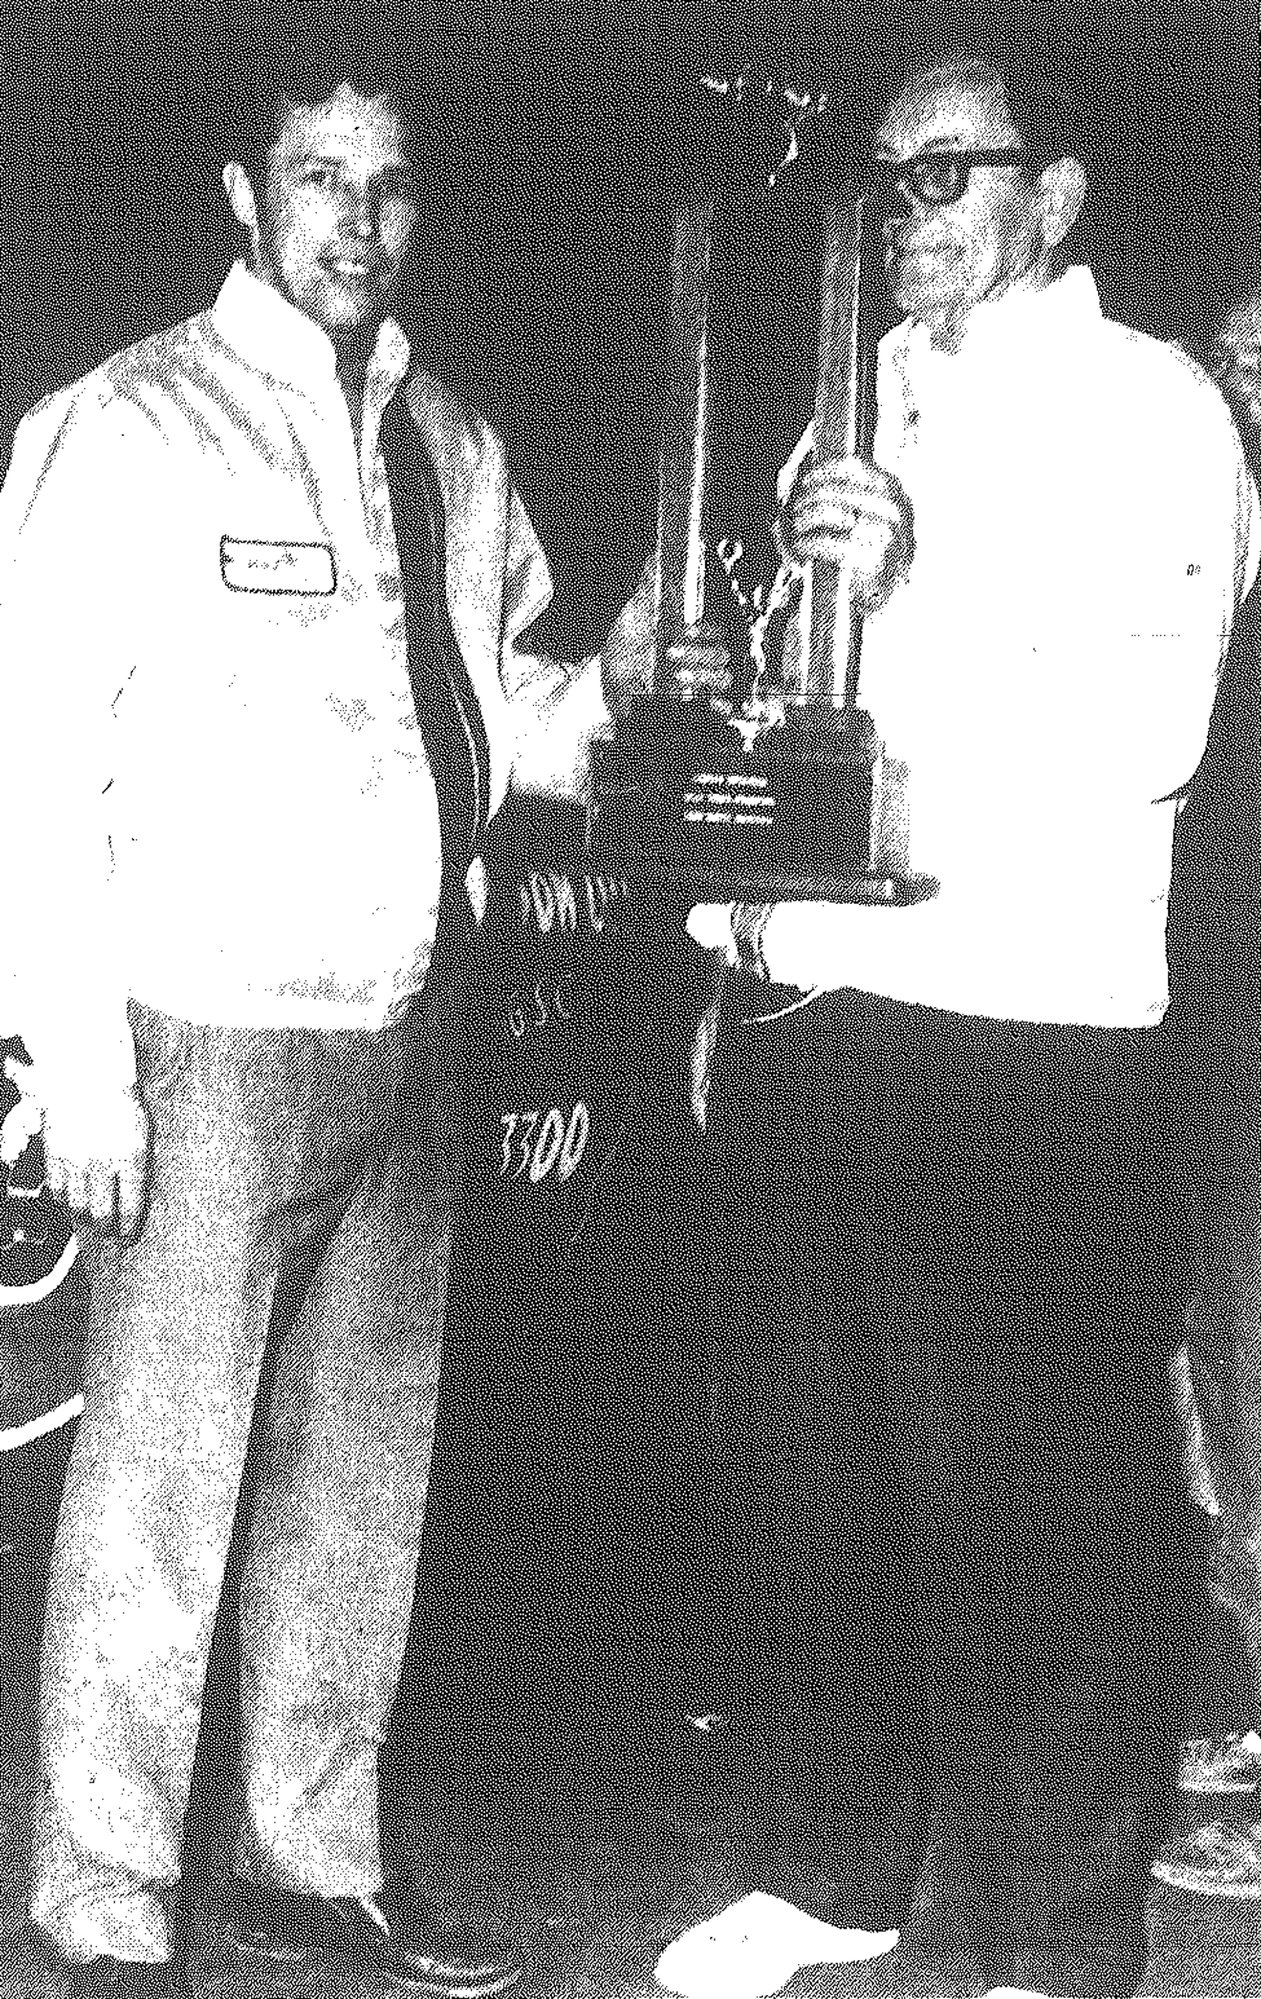 "Slick Gibbons, left, is awarded modified championship at Sumter Speedway by track promoter Pete Kiker on Oct. 20, 1970. Gibbons won 18 races during the 1970 season to become the biggest single-season winner ever at the quarter-mile oval. The Manning veteran earned more than $3,500 for his efforts. Edward Guy ""Slick"" Gibbons died July 18, 2020, at age 77."